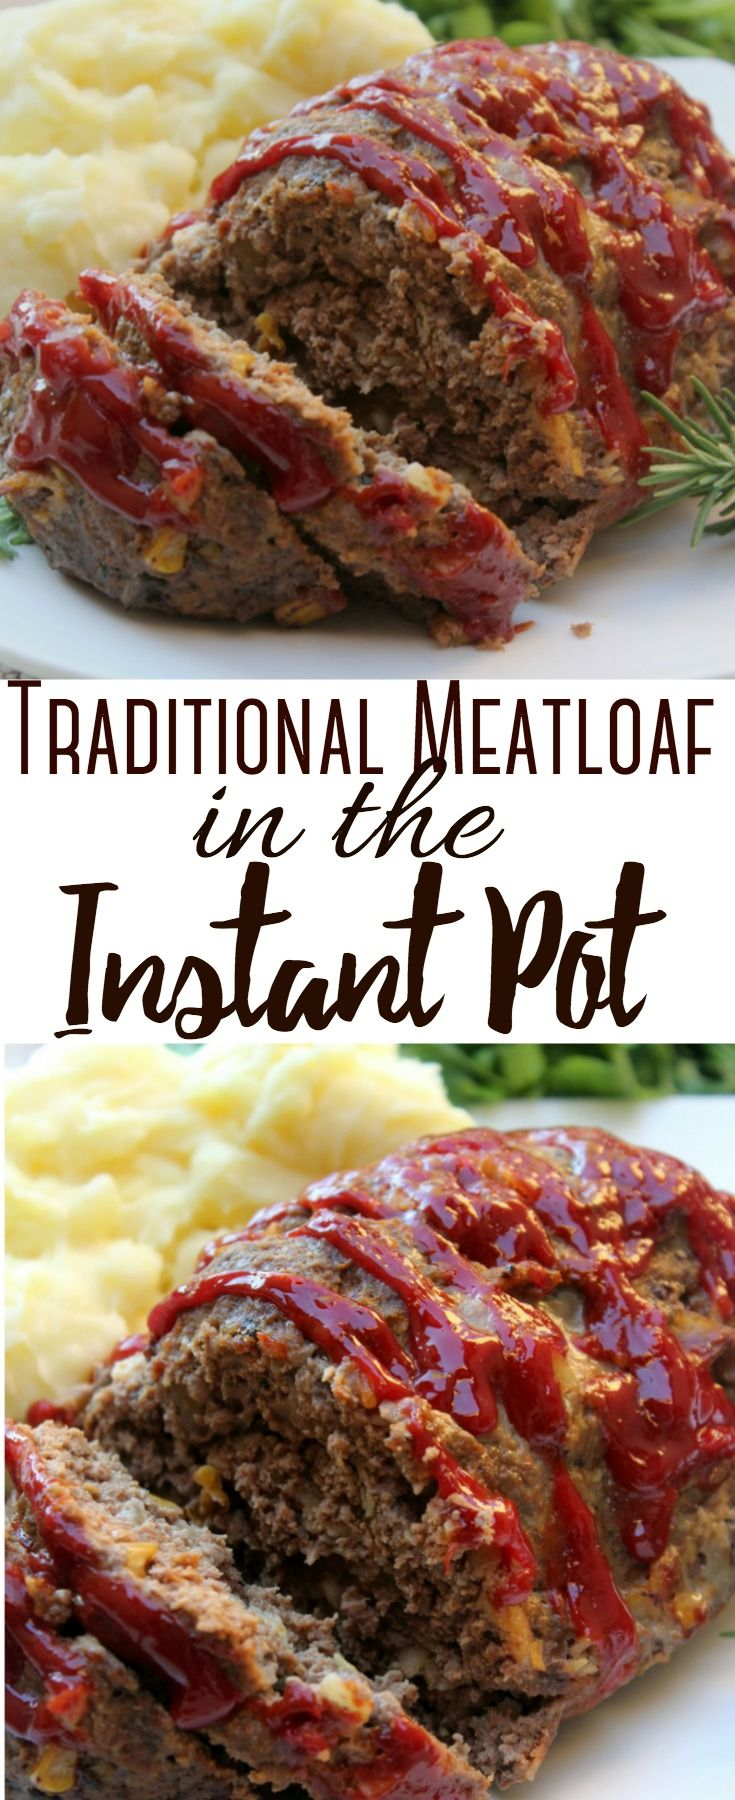 This traditional meatloaf recipe features flavorful seasonings, ground beef, and a touch of garlic. It cooks up quickly in the Instant Pot. #instantpotrecipeseasy